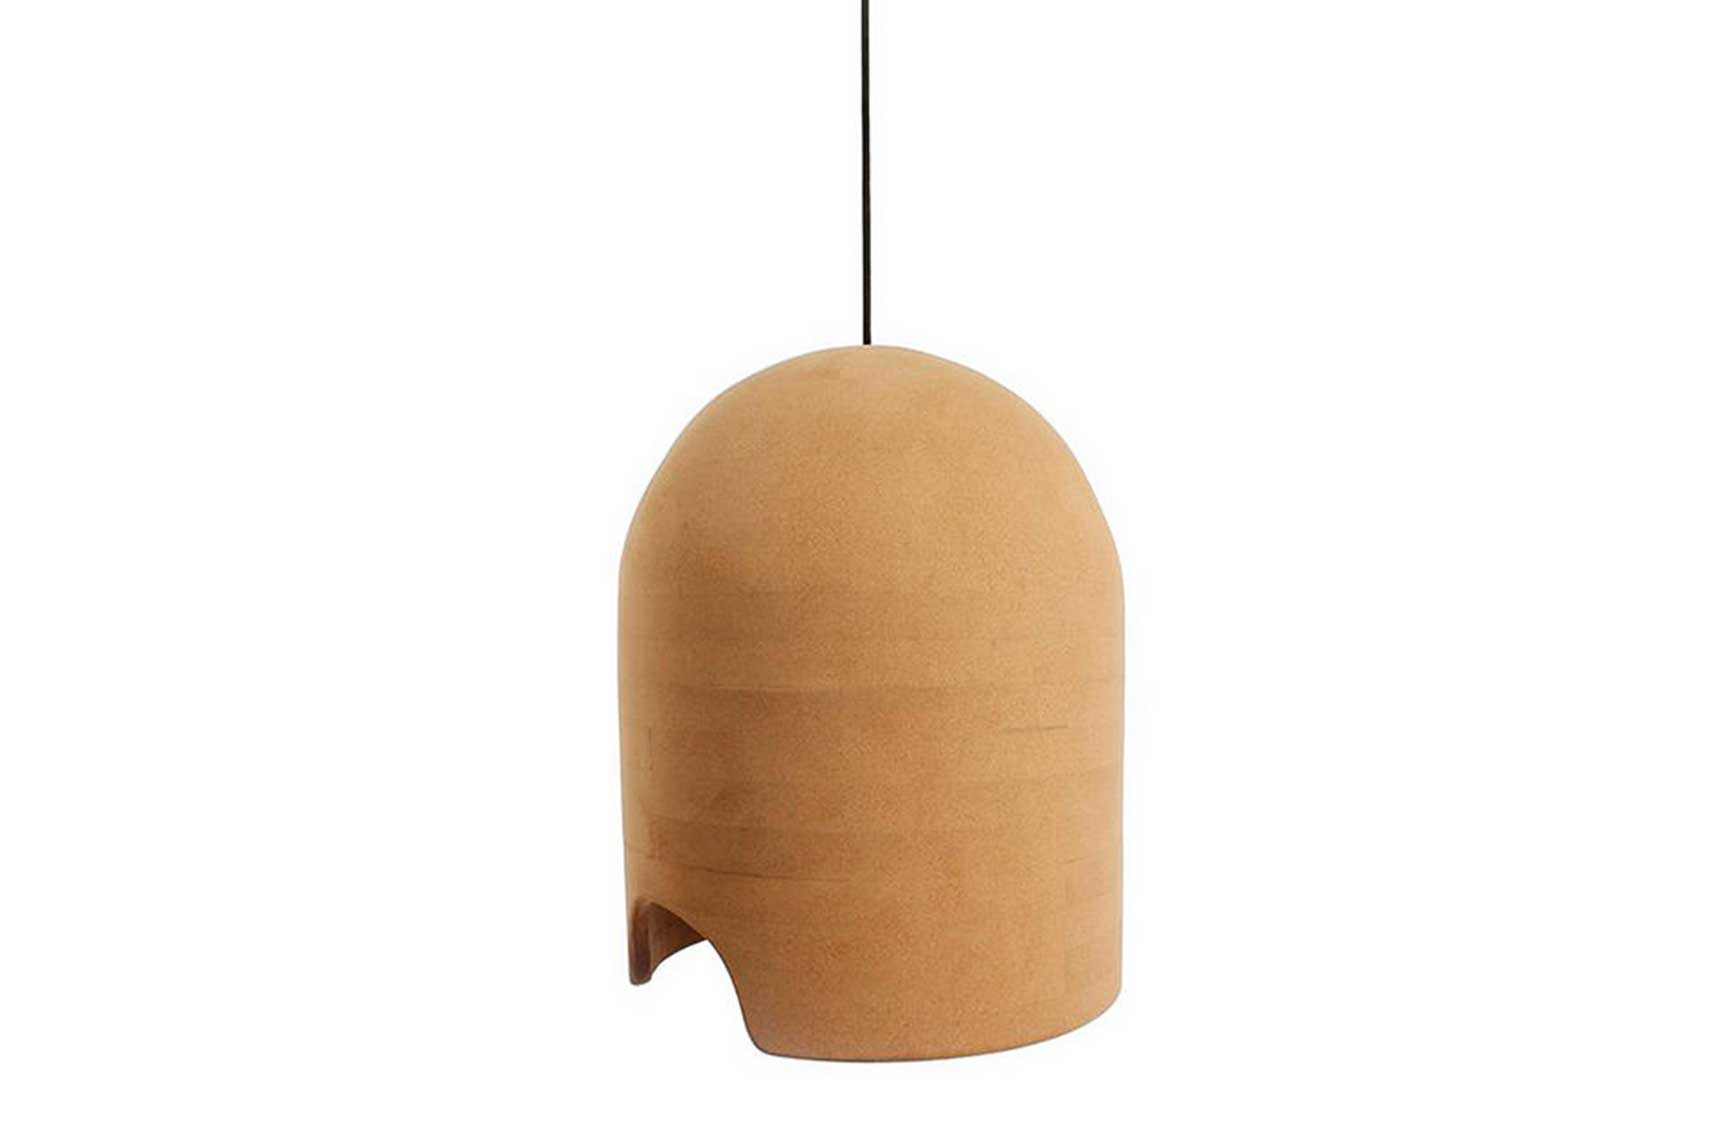 Pierre-Emmanuel Vandeputte, anti noise pollution, Cork Helmet, noise block, Salone del Mobile, renewable cork,